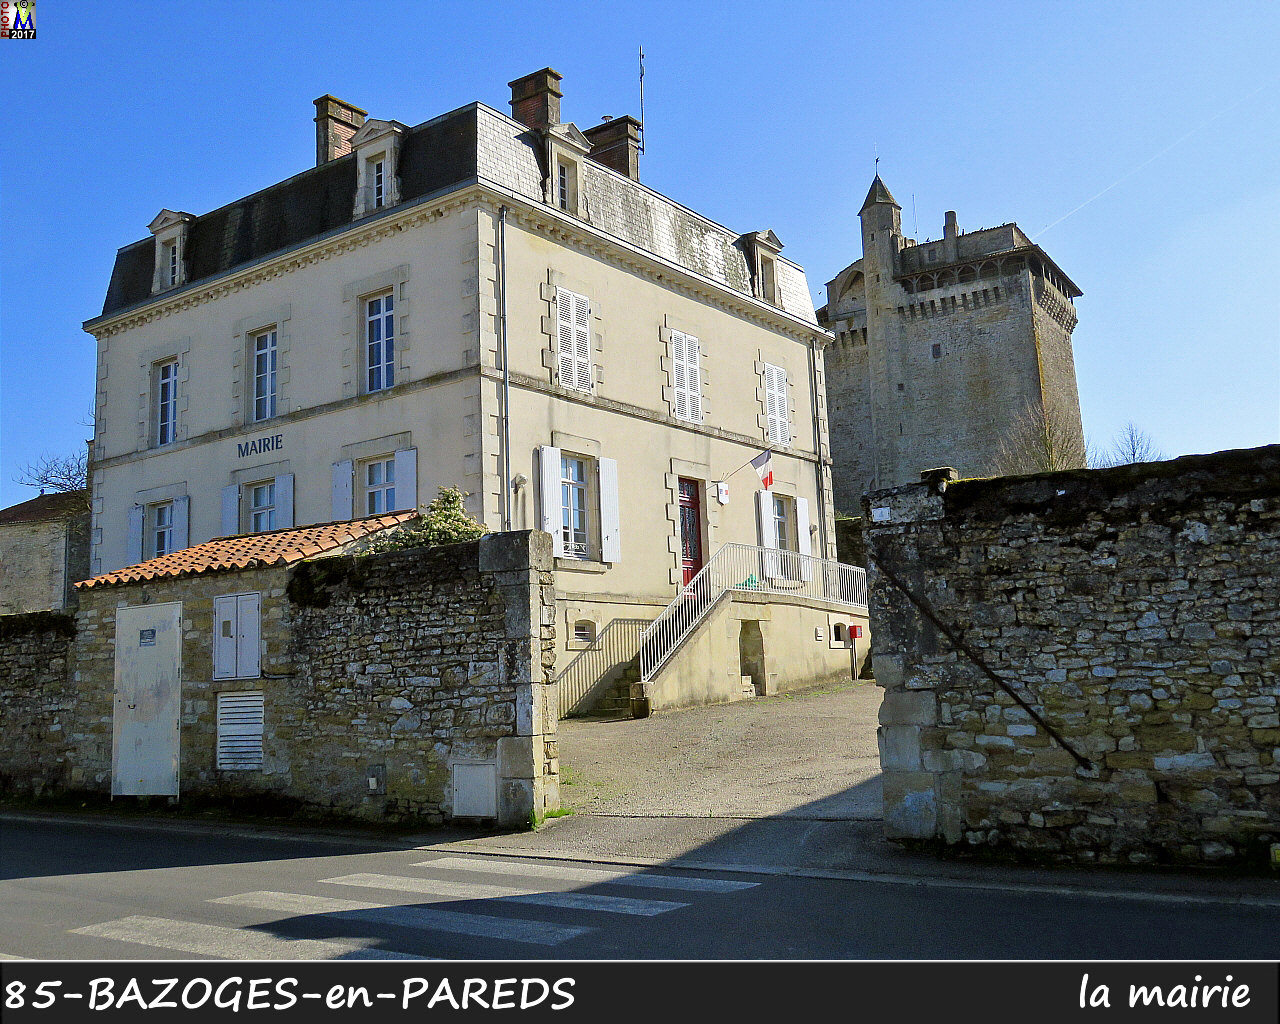 85BAZOGES-PAREDS_mairie_1000.jpg